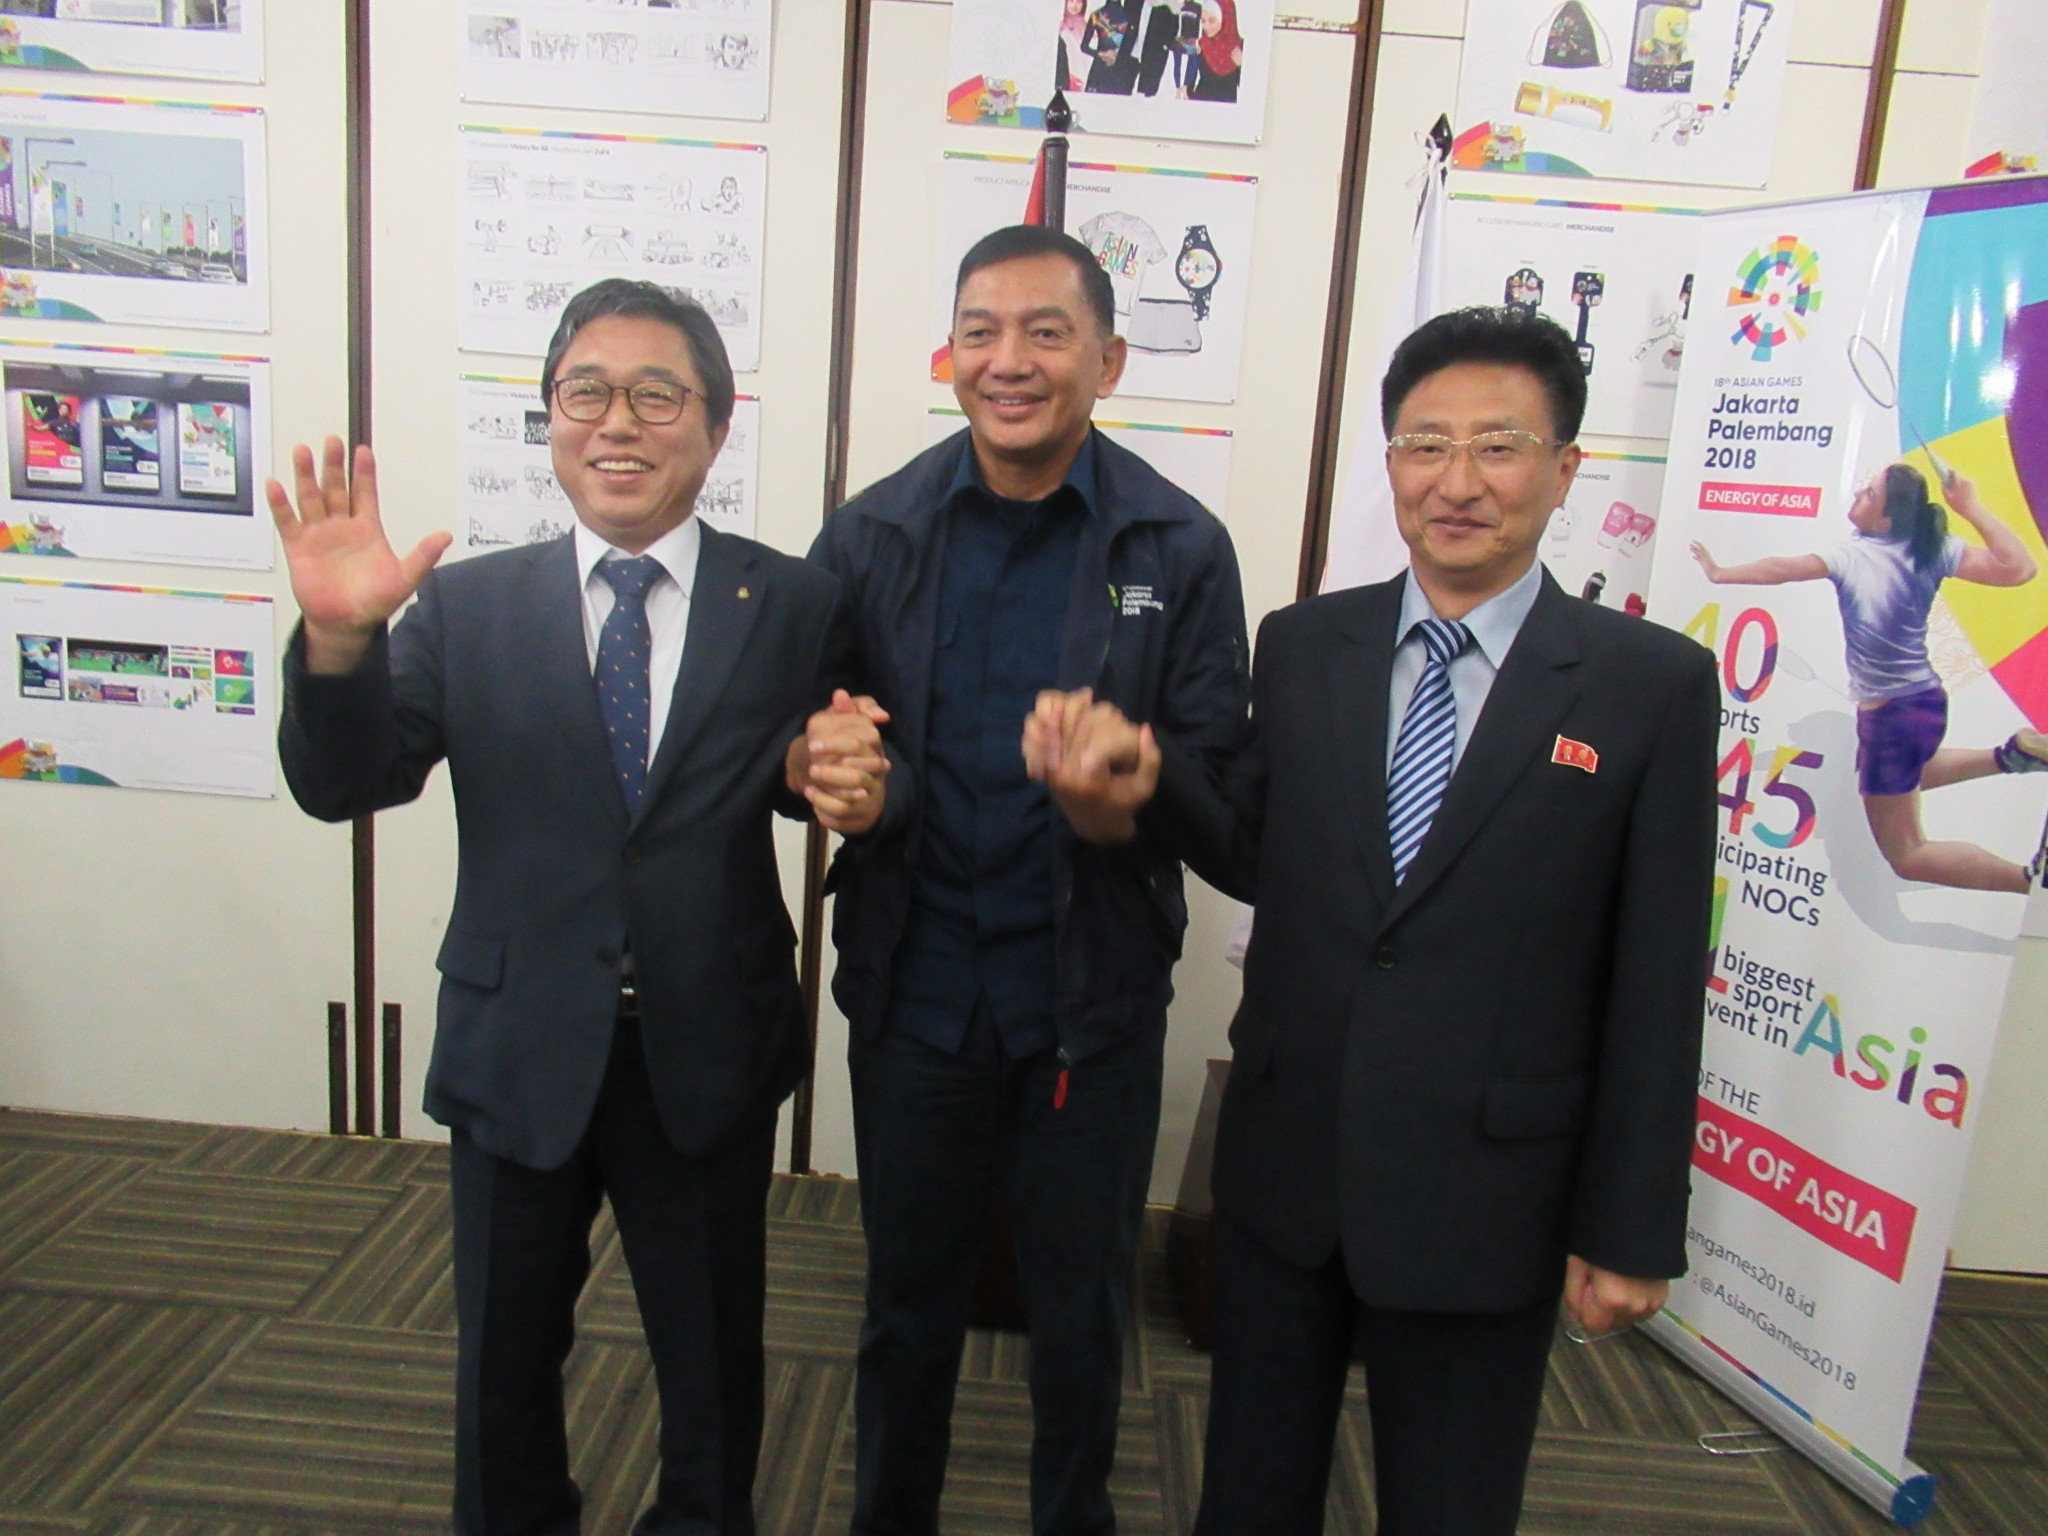 North and South Korea agree to compete together in three sports at 2018 Asian Games